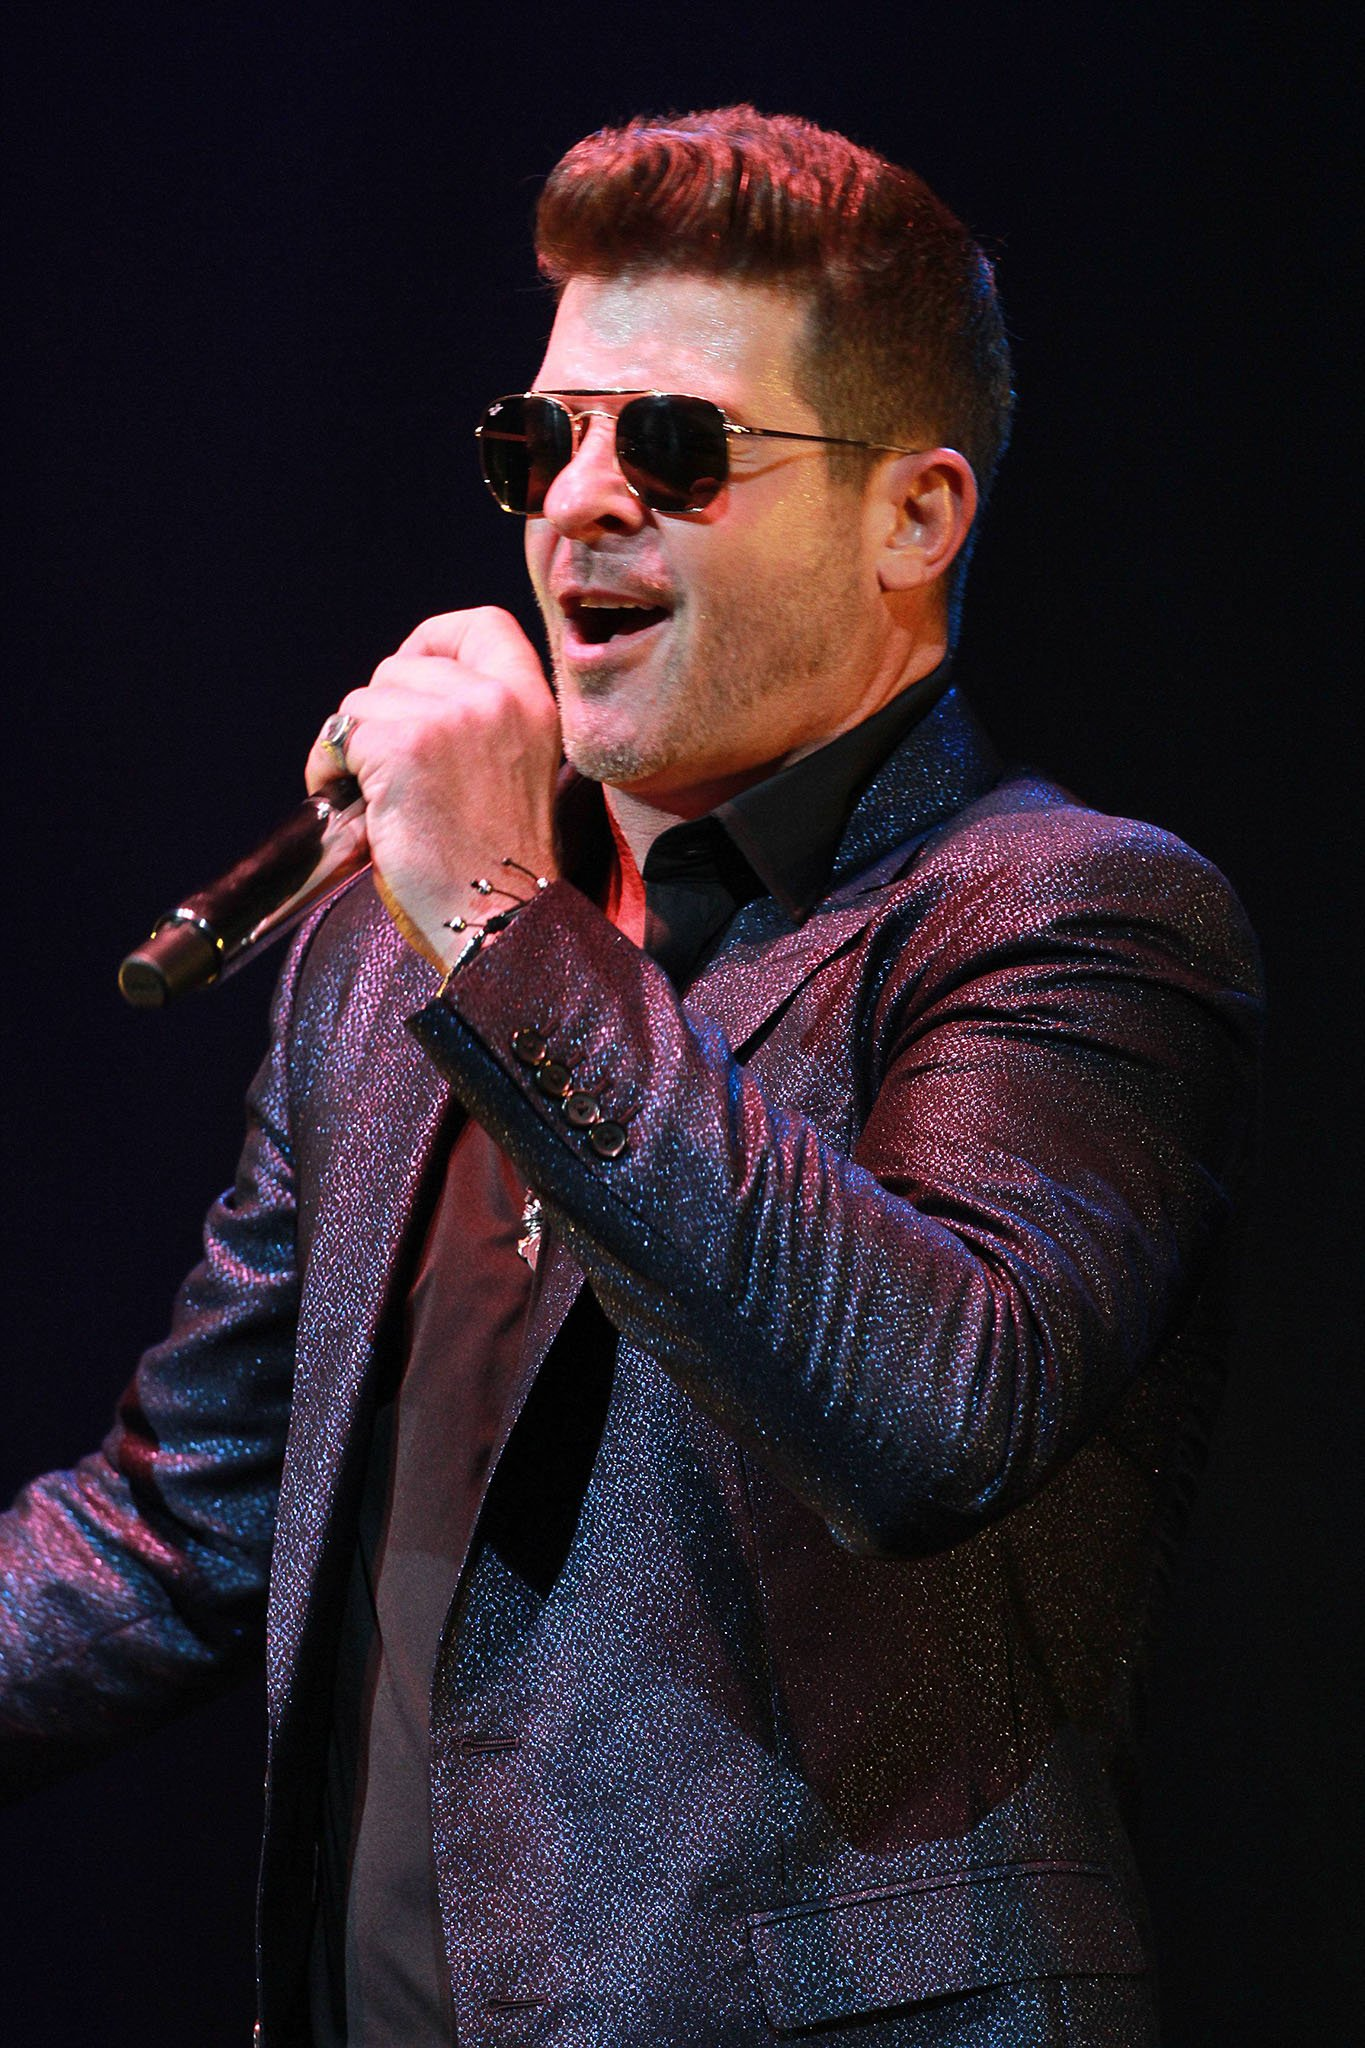 Robin Thicke, pictured performing at the 2019 Sketchbook Tour, is accused of groping Emily Ratajkowski's boobs